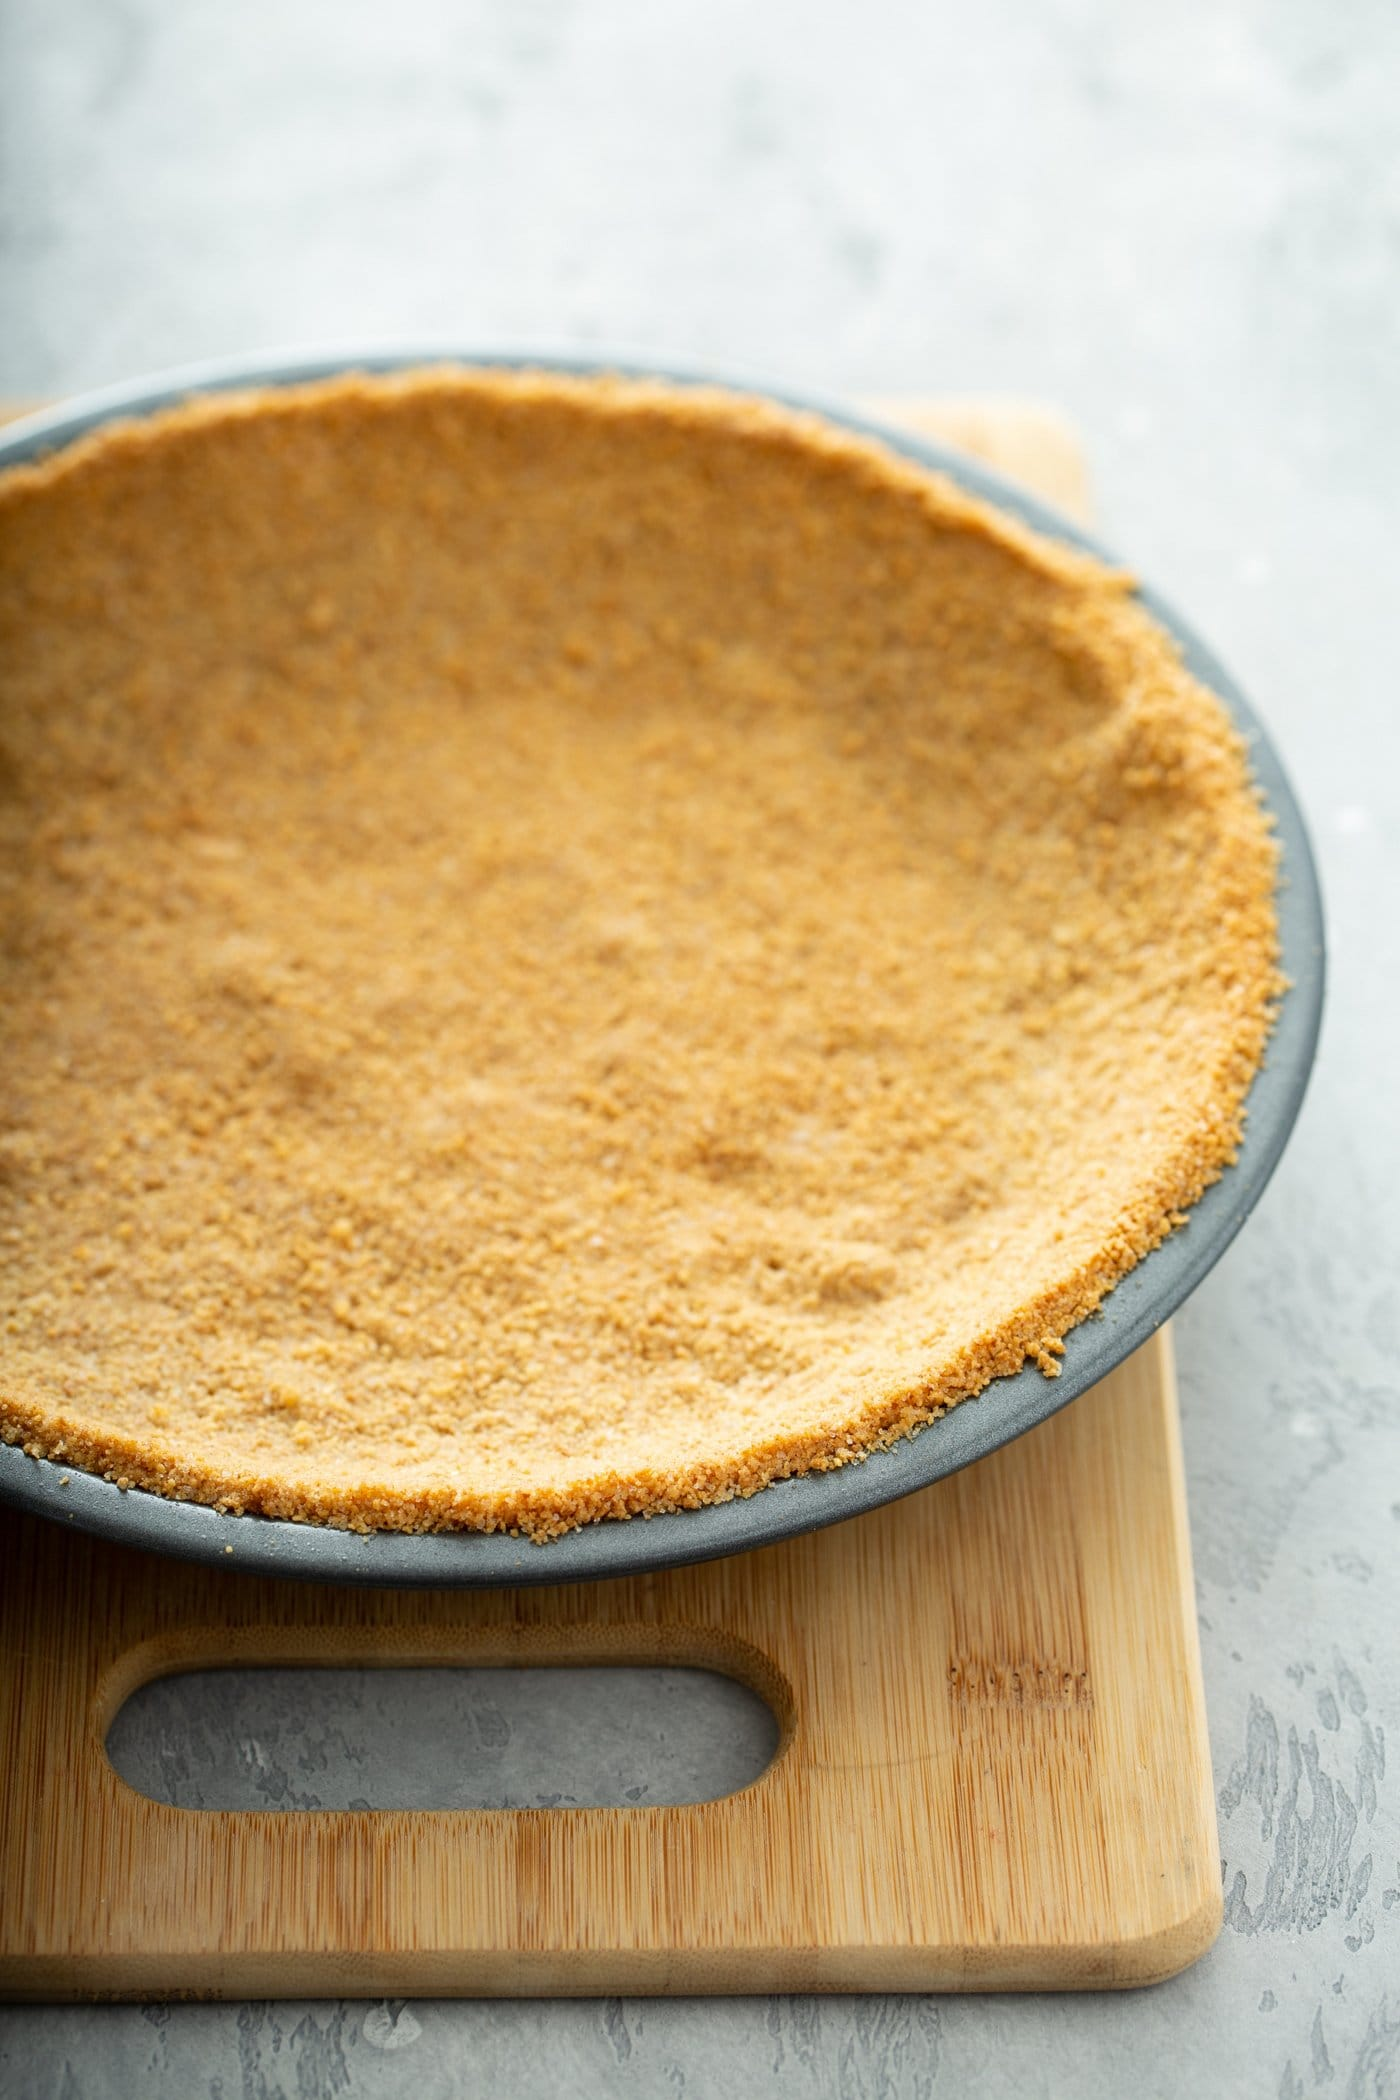 A graham cracker crust in a pie pan.